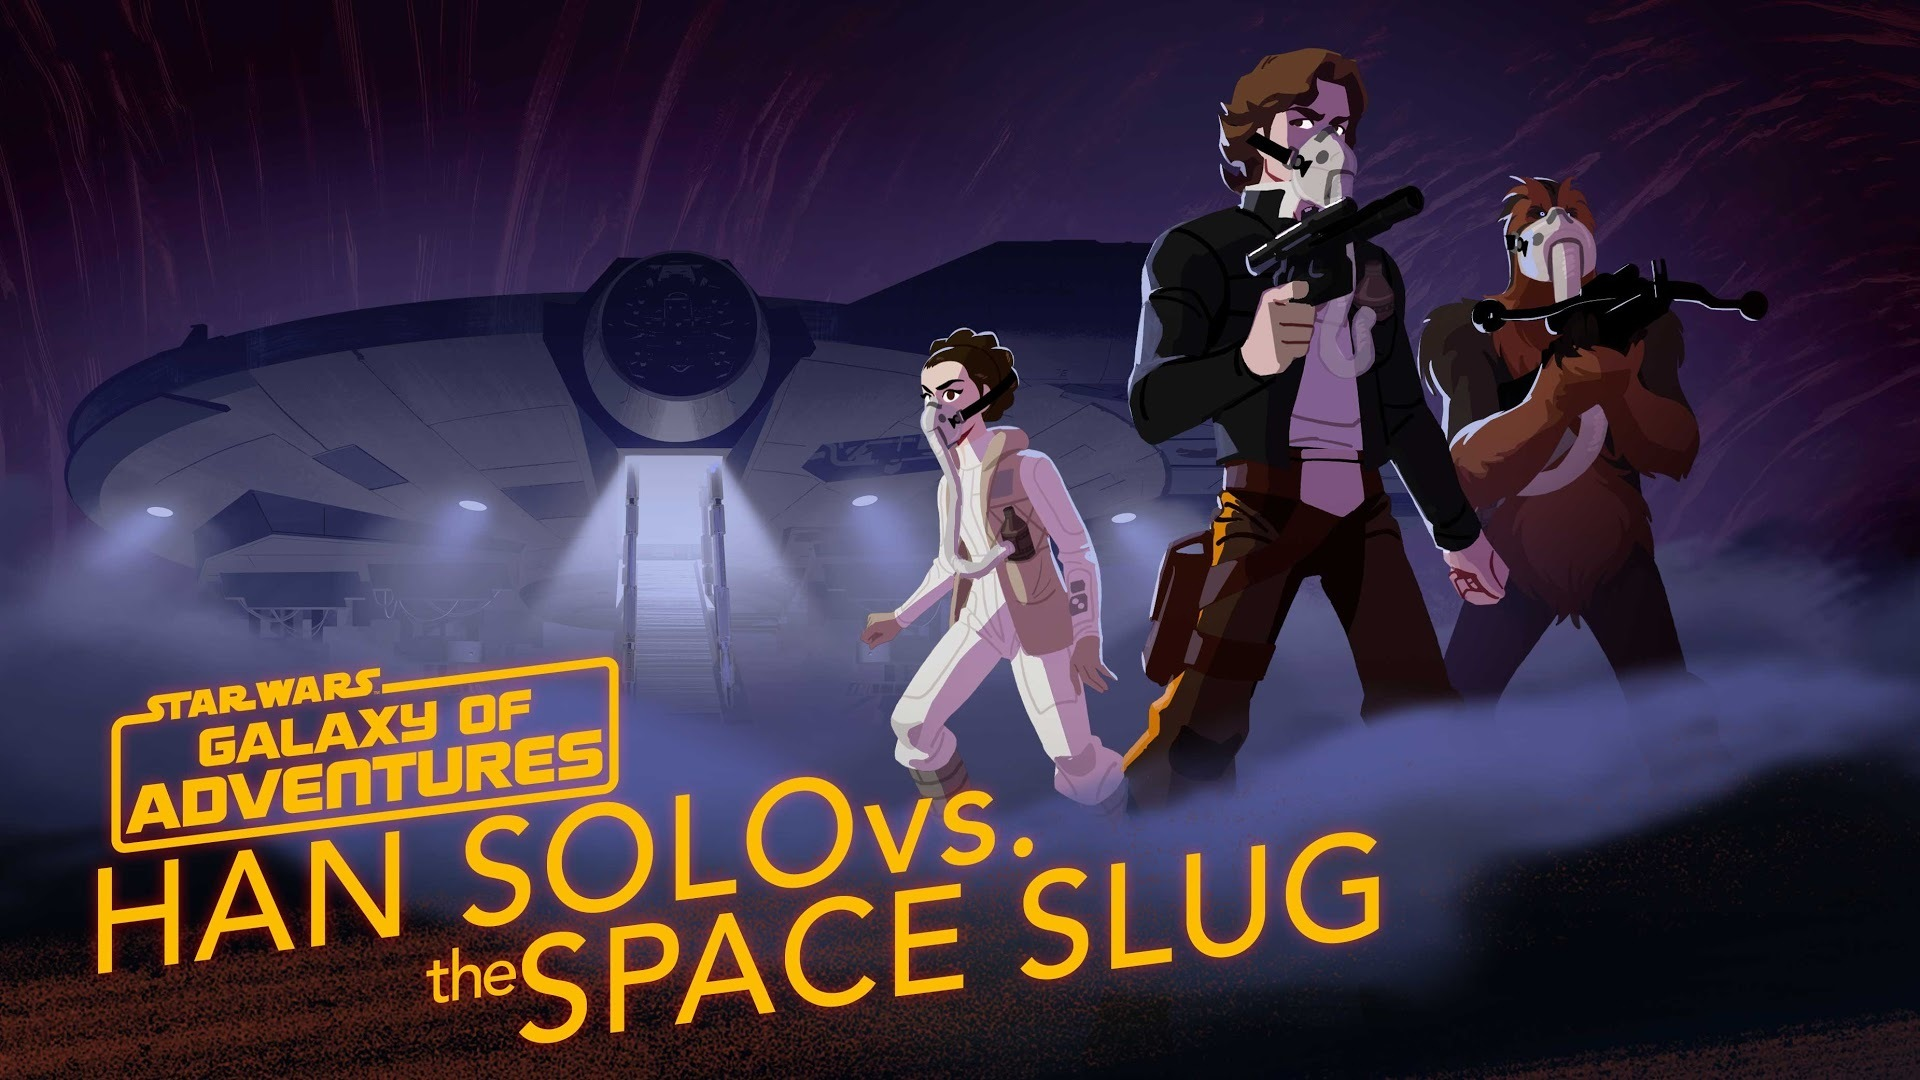 Han Solo vs. the Space Slug - The Escape Artist | Star Wars Galaxy of Adventures